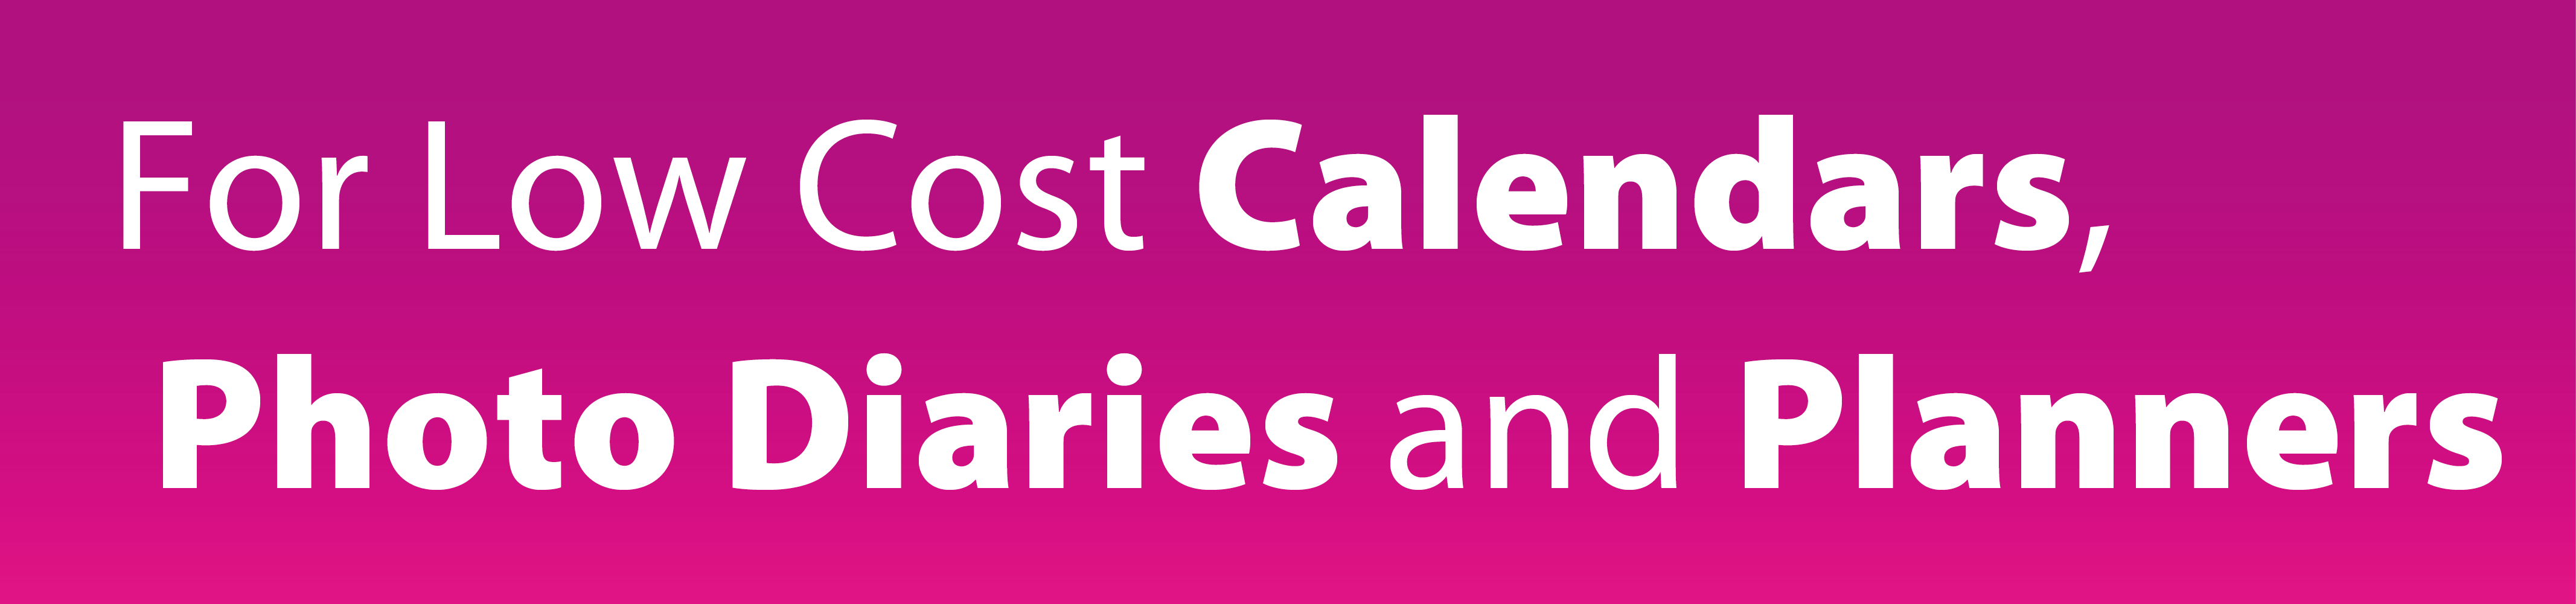 low cost photo calendar printing from ask calendars